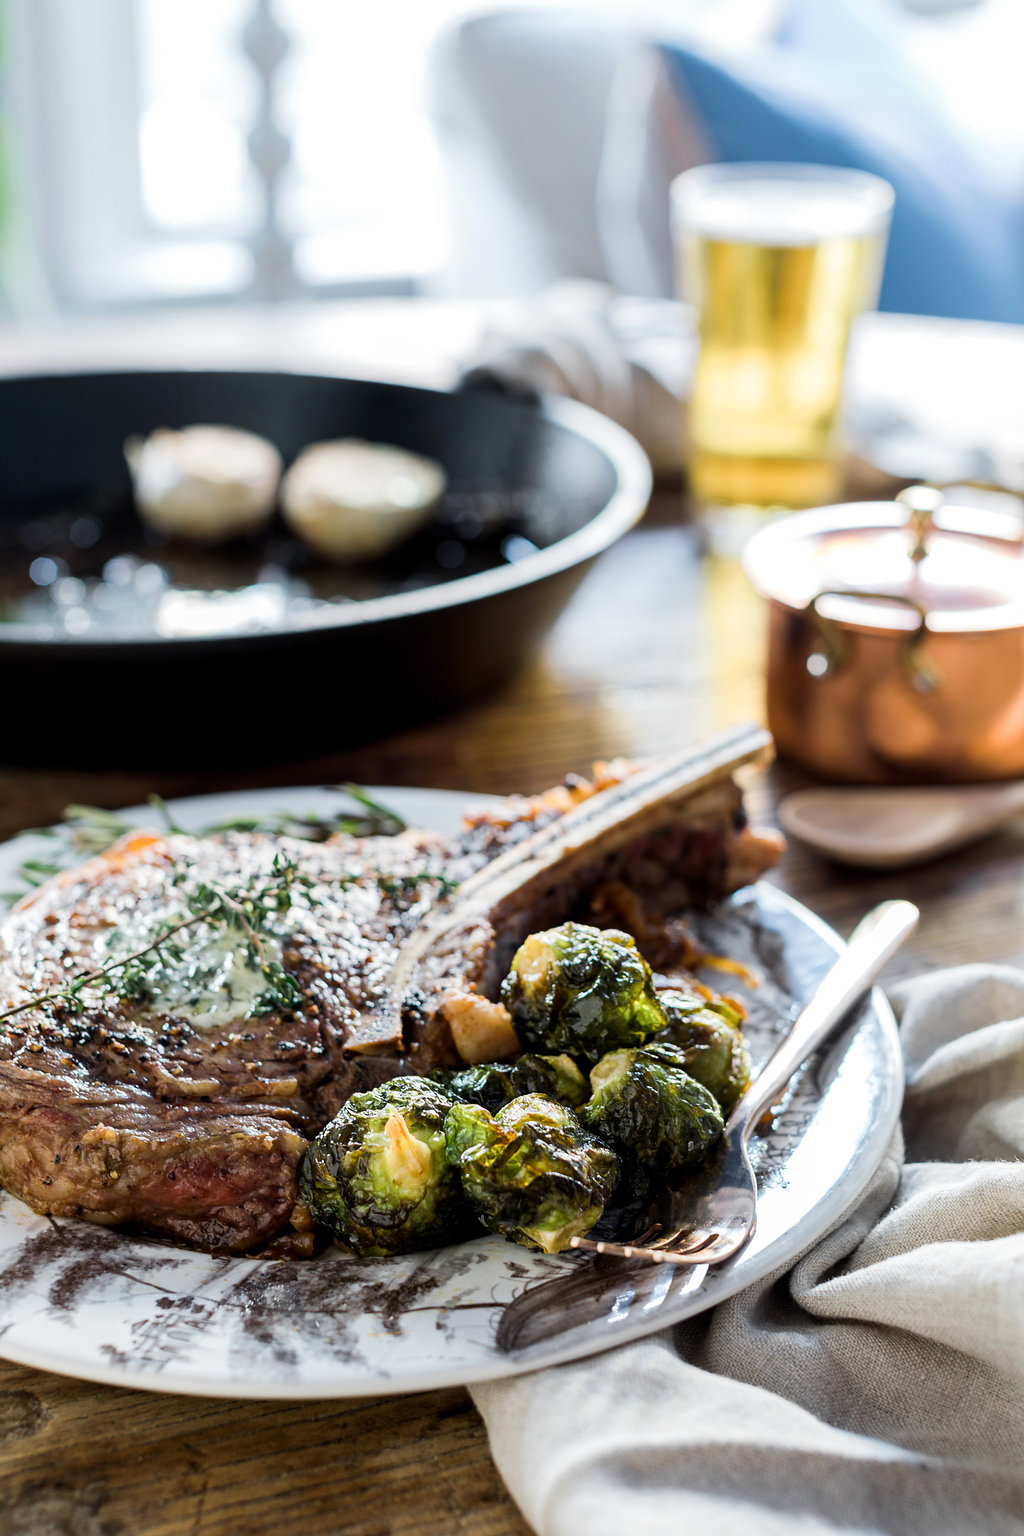 Skillet seared ribeye steak dinner with homemade herb butter, caramalized onions & fried brussel sprouts